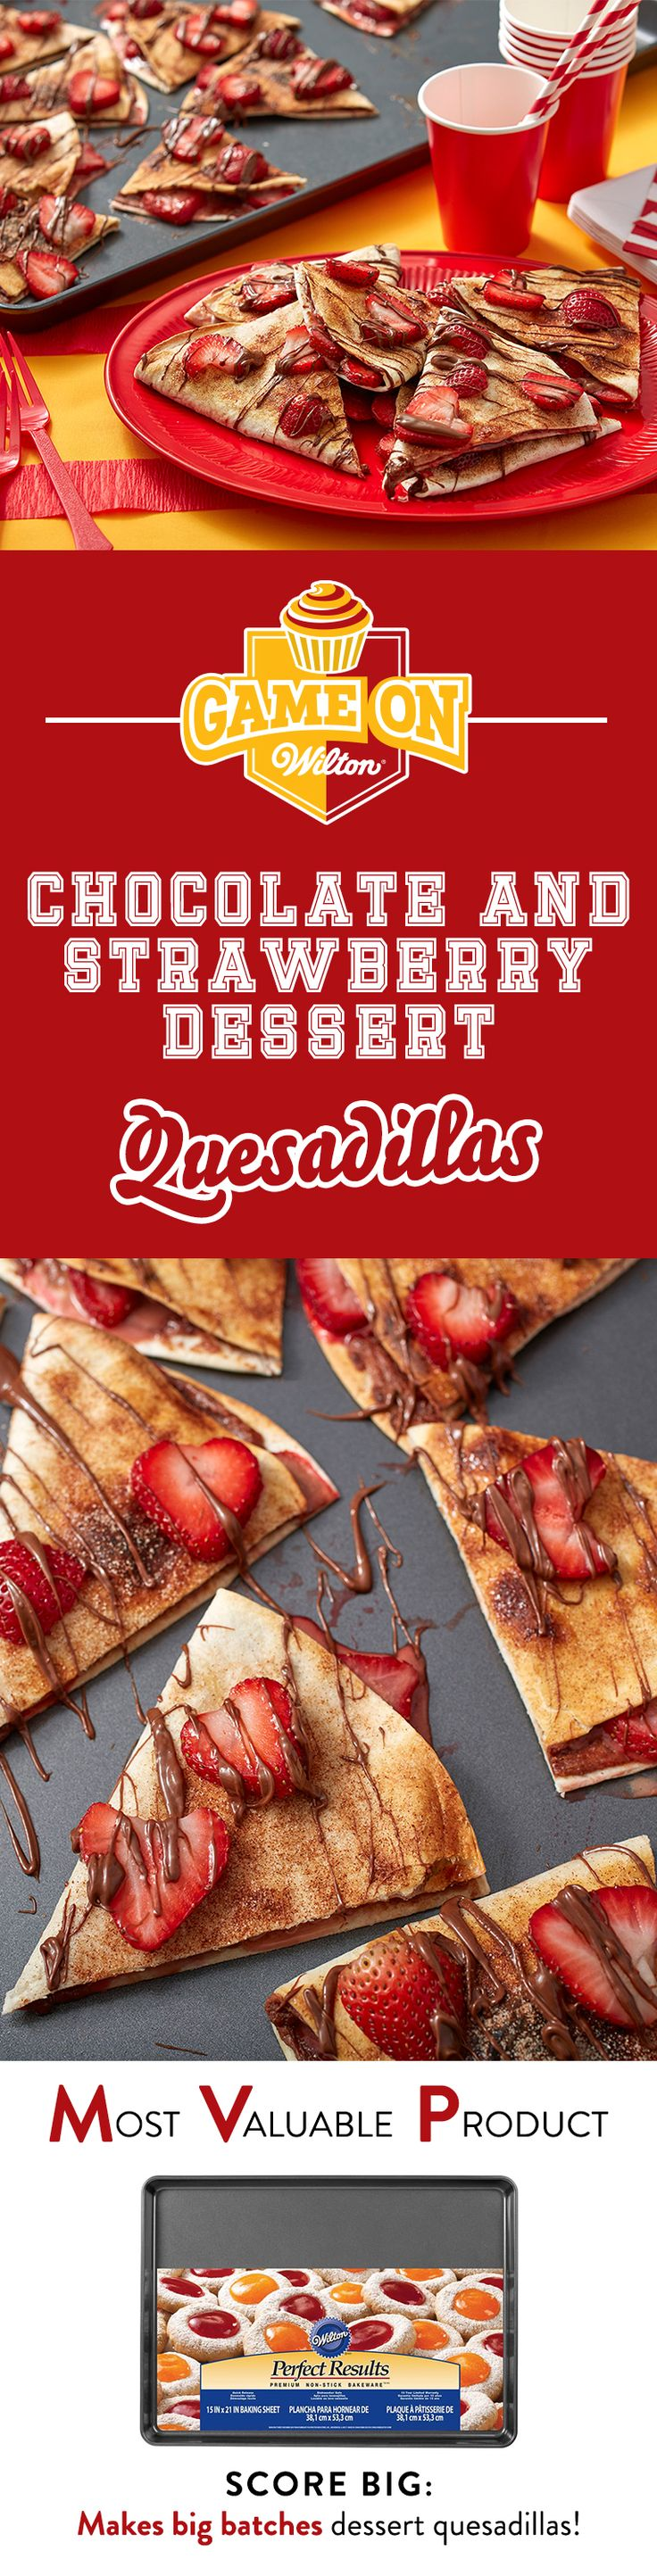 Chocolate and Strawberry Dessert Quesadillas Recipe - This is a game changer. Cream cheese dessert quesadillas! This quick game day snack combines chocolate hazelnut and strawberry cream cheese filling with a crunchy cinnamon sugar crumble. Serve at your tailgate or football game party!